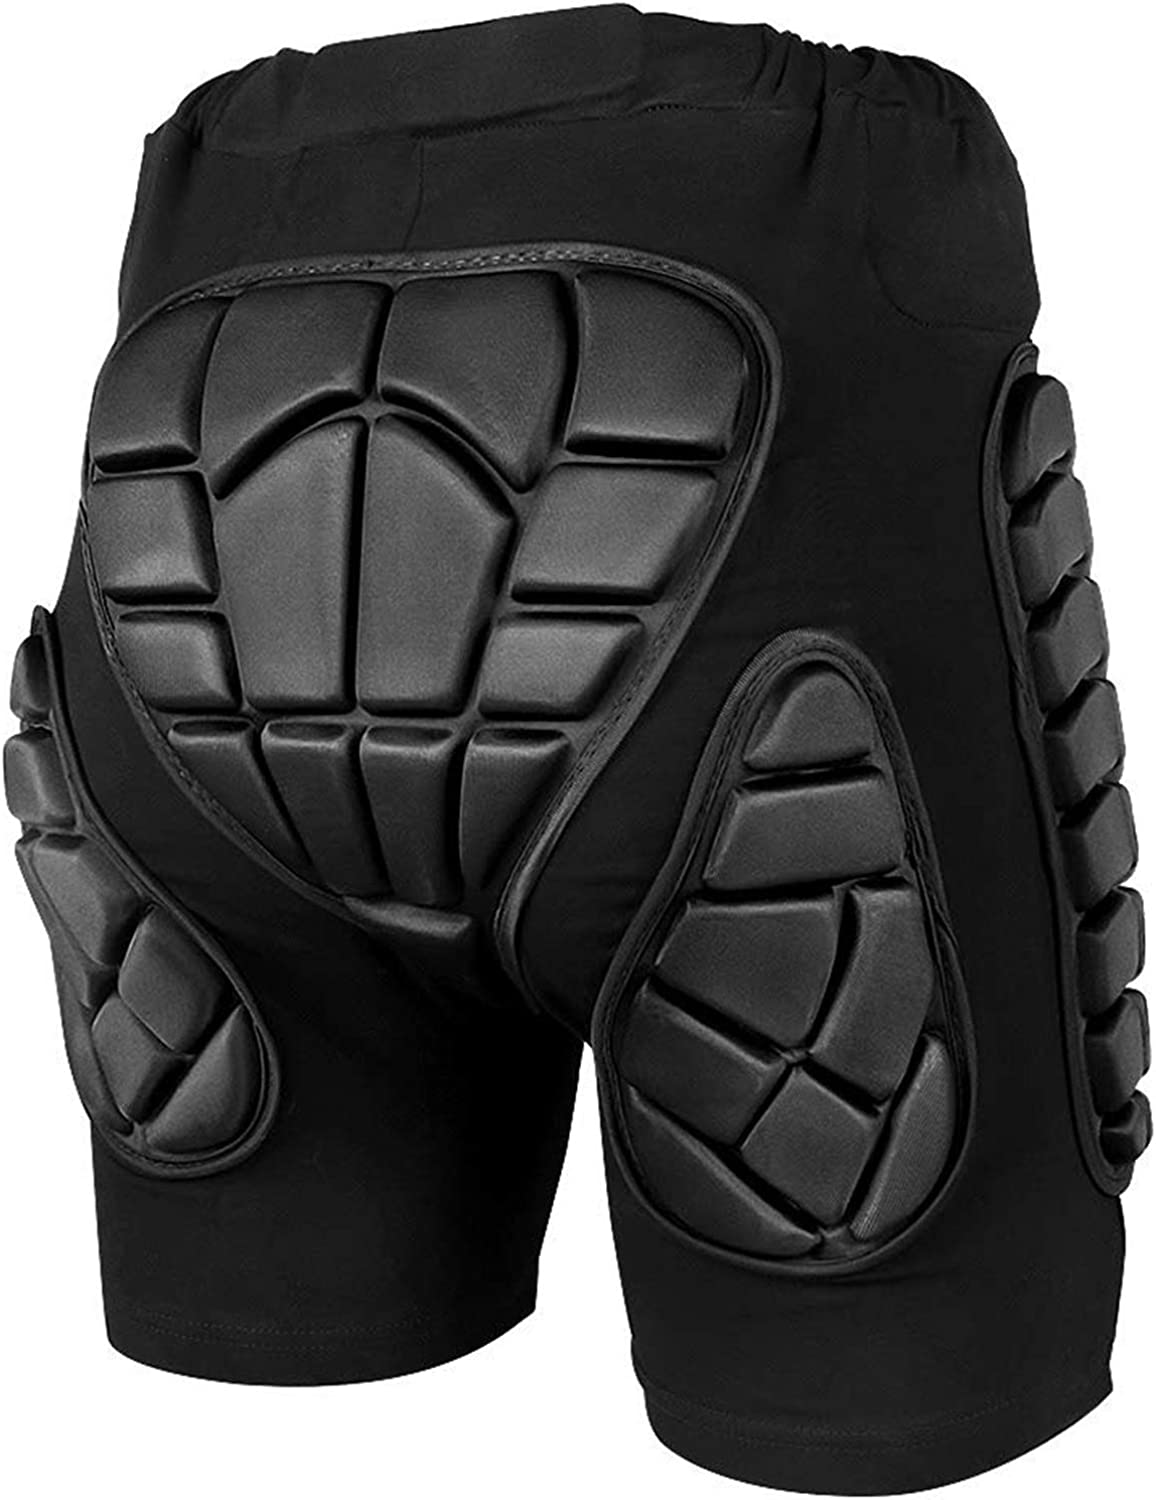 ZIONOR 3D Protective Padded Short Pants Hip Butt EVA for Ski Snowboarding (XS) Black: Clothing